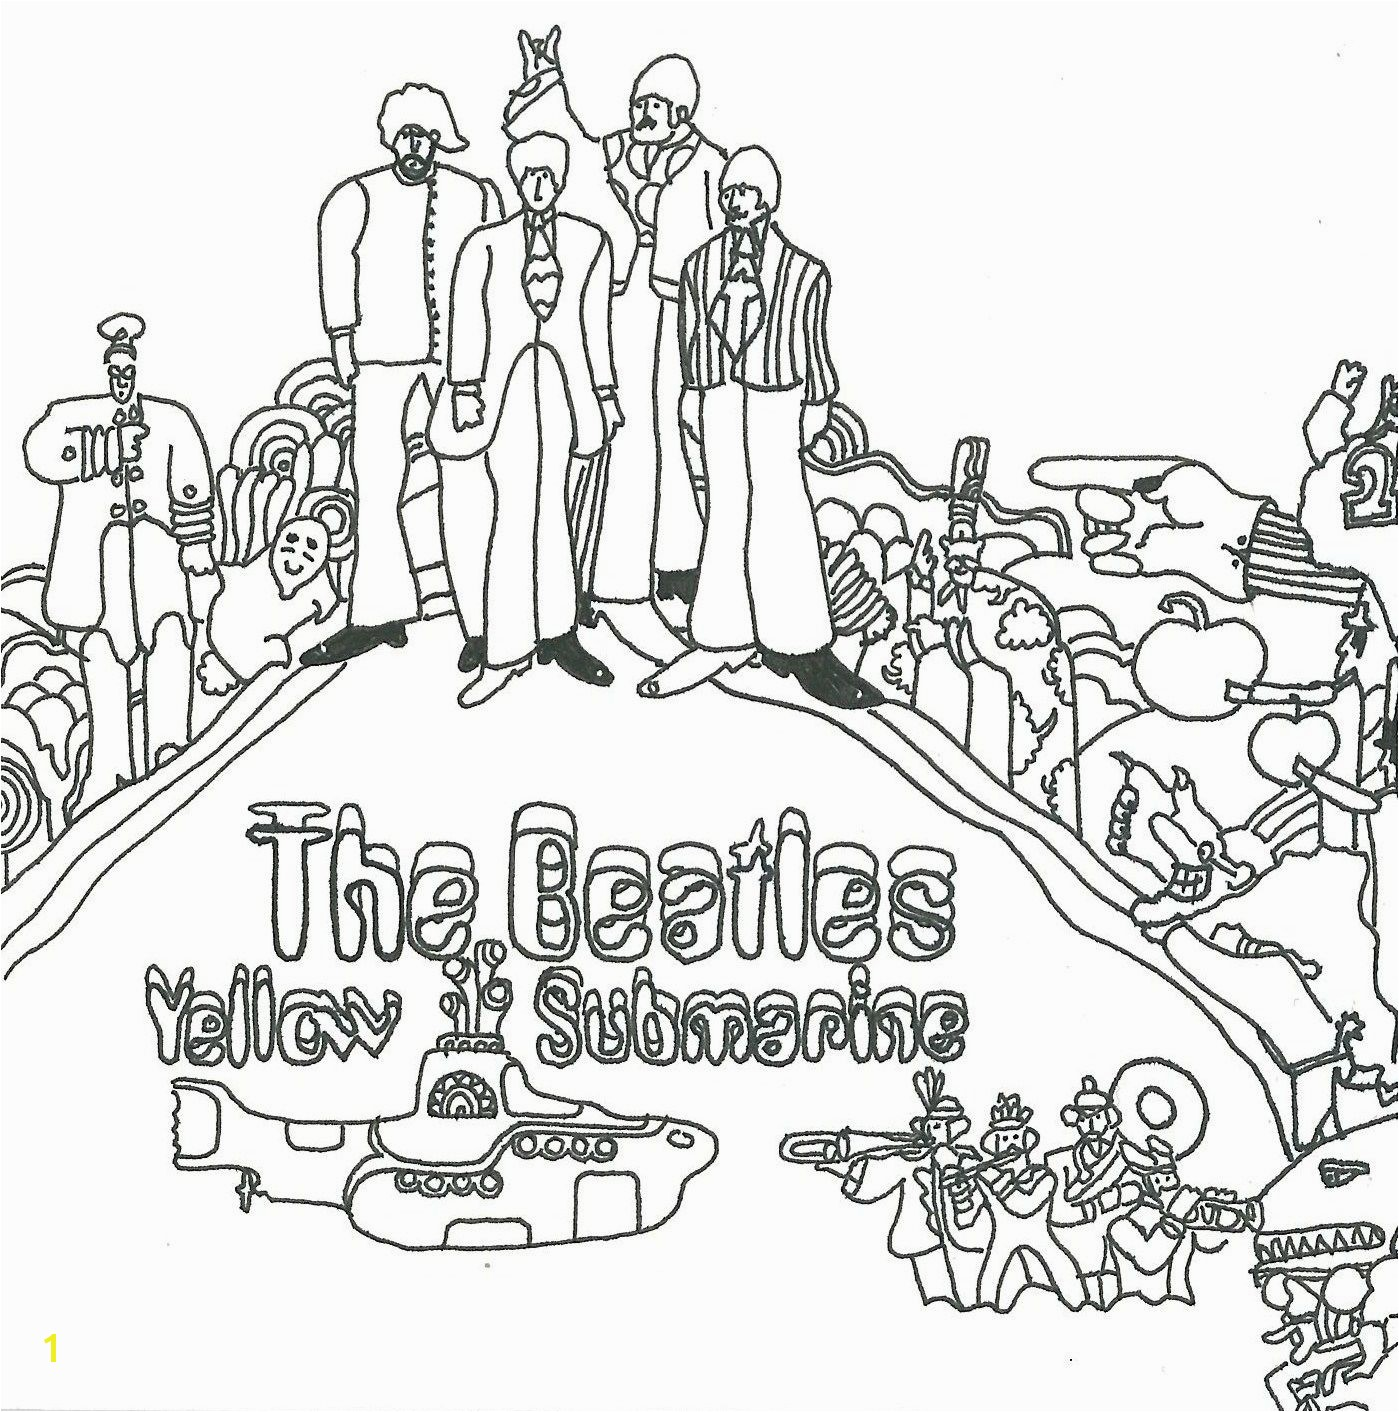 beatles yellow submarine coloring pages Beatles Yellow Submarine Coloring Pages